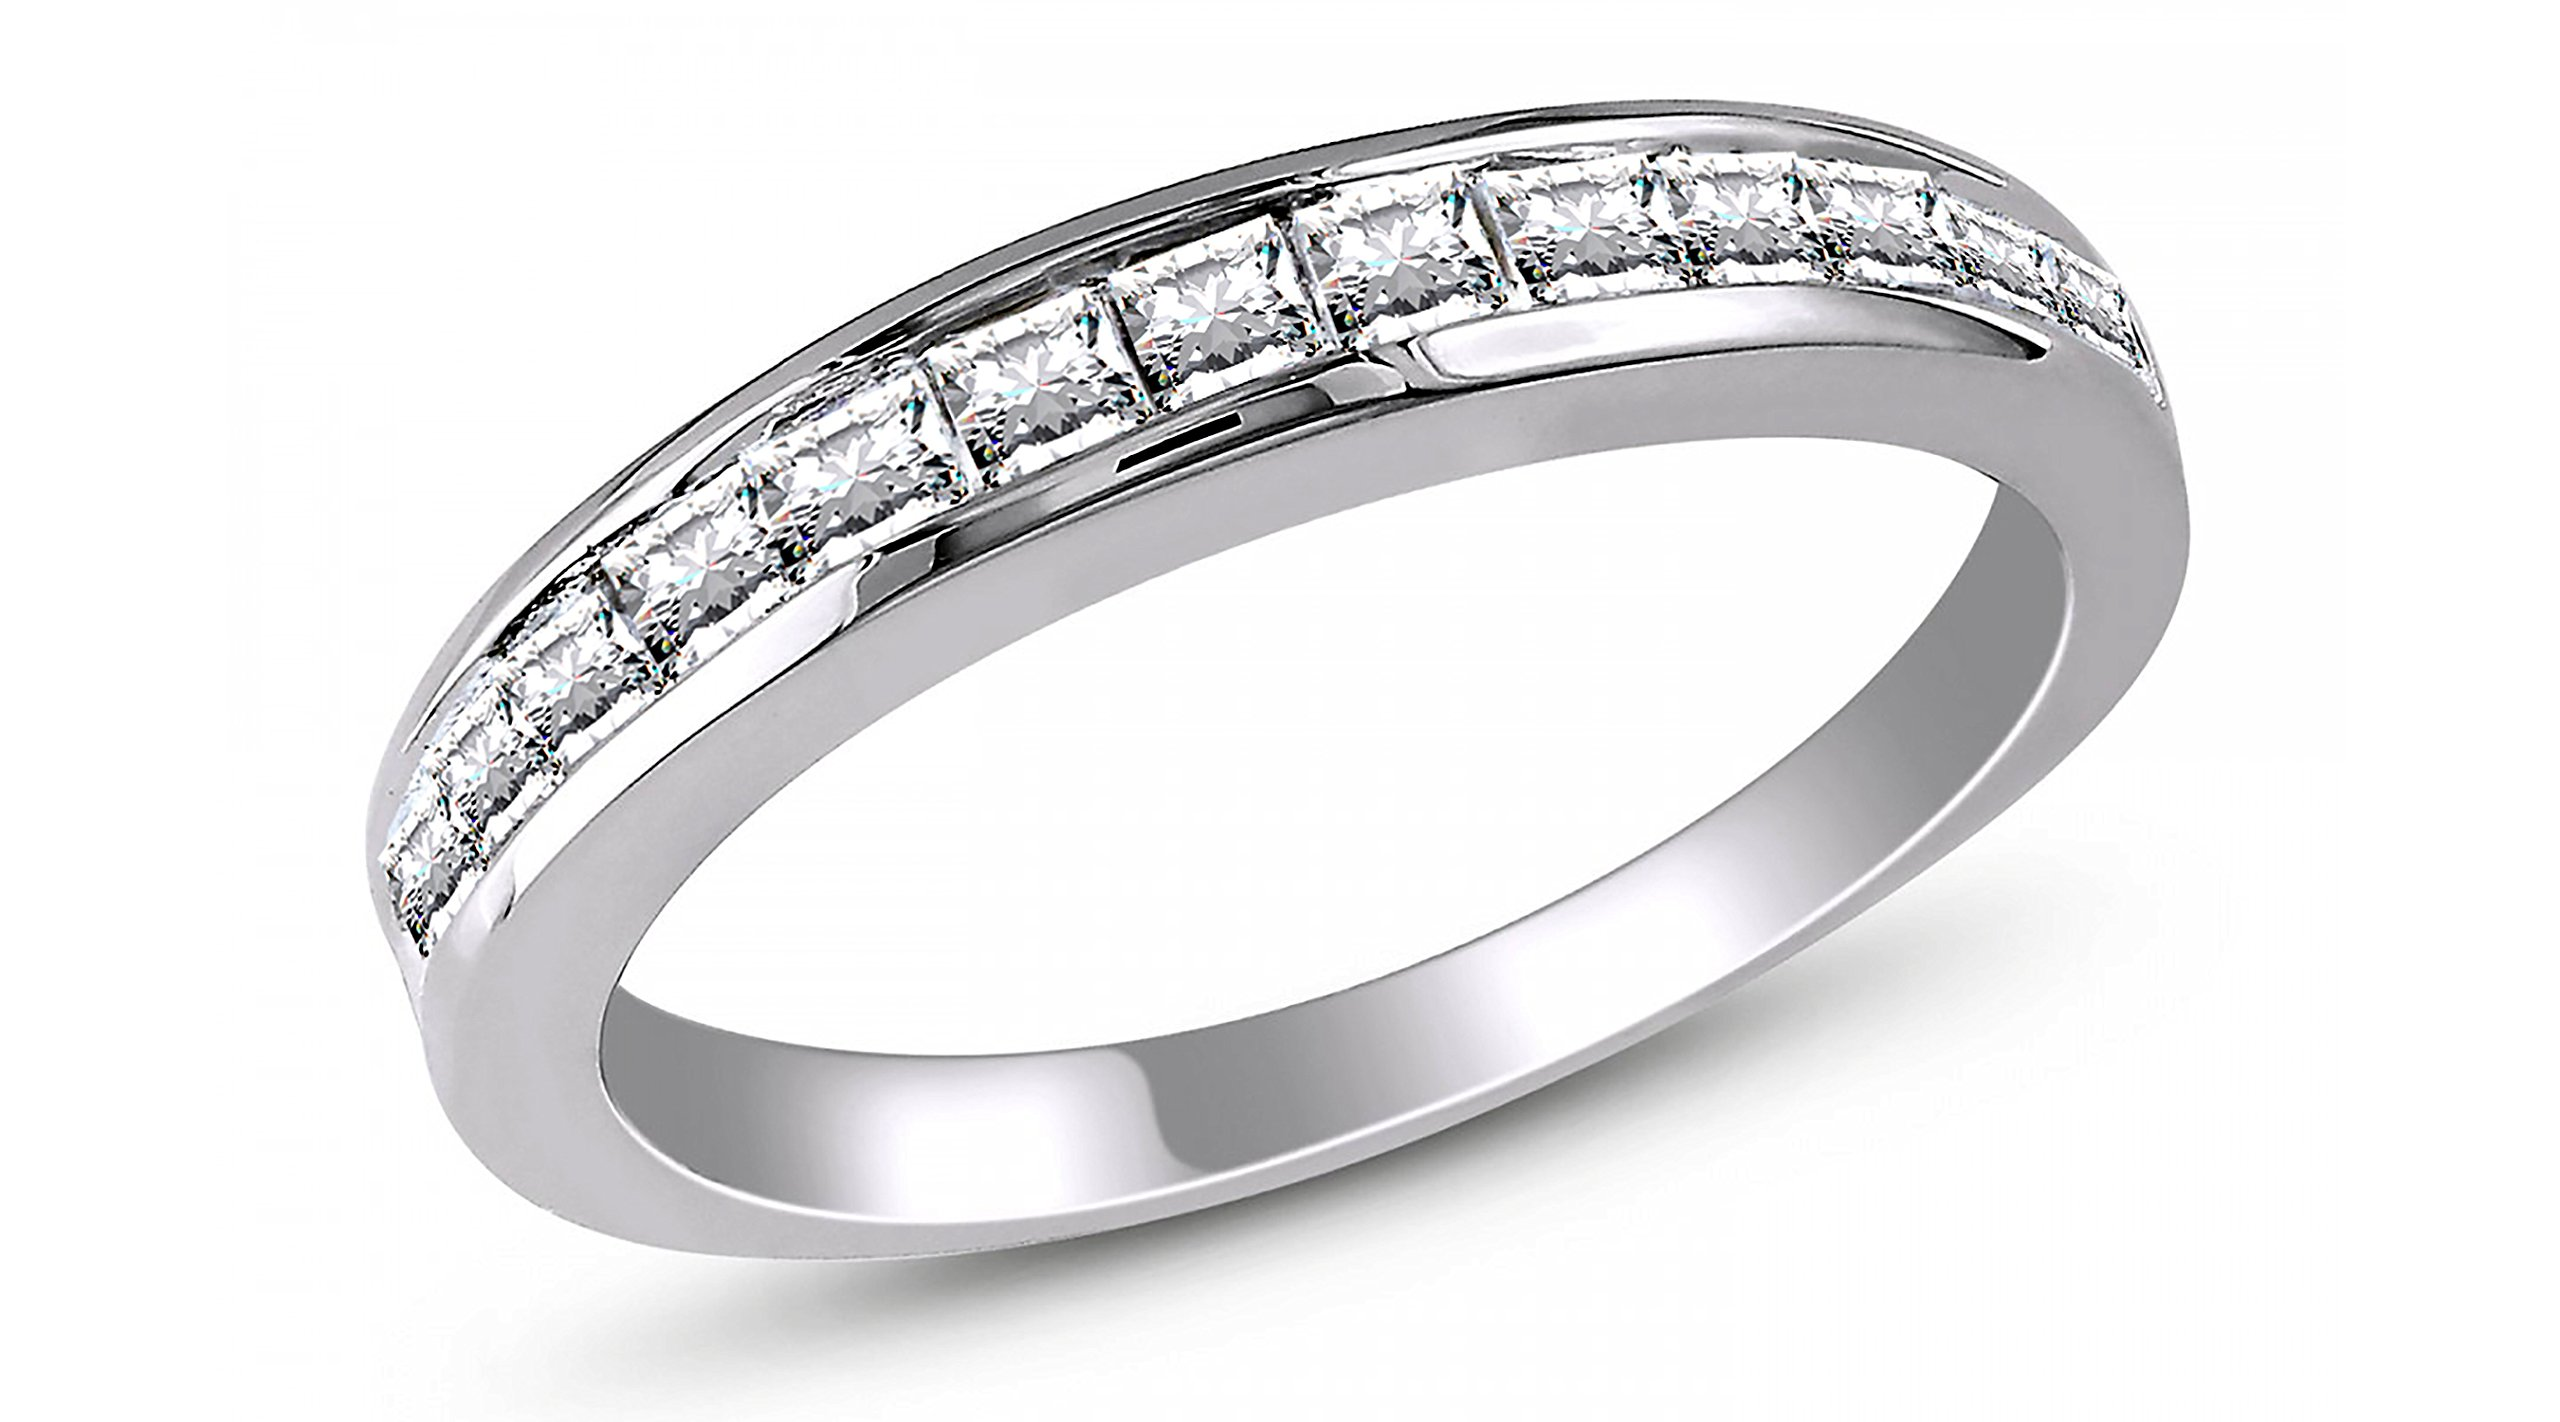 Georgia II Anniversary Band 925 Sterling Silver Ring Princess Cut- Ginger Lyne Collection